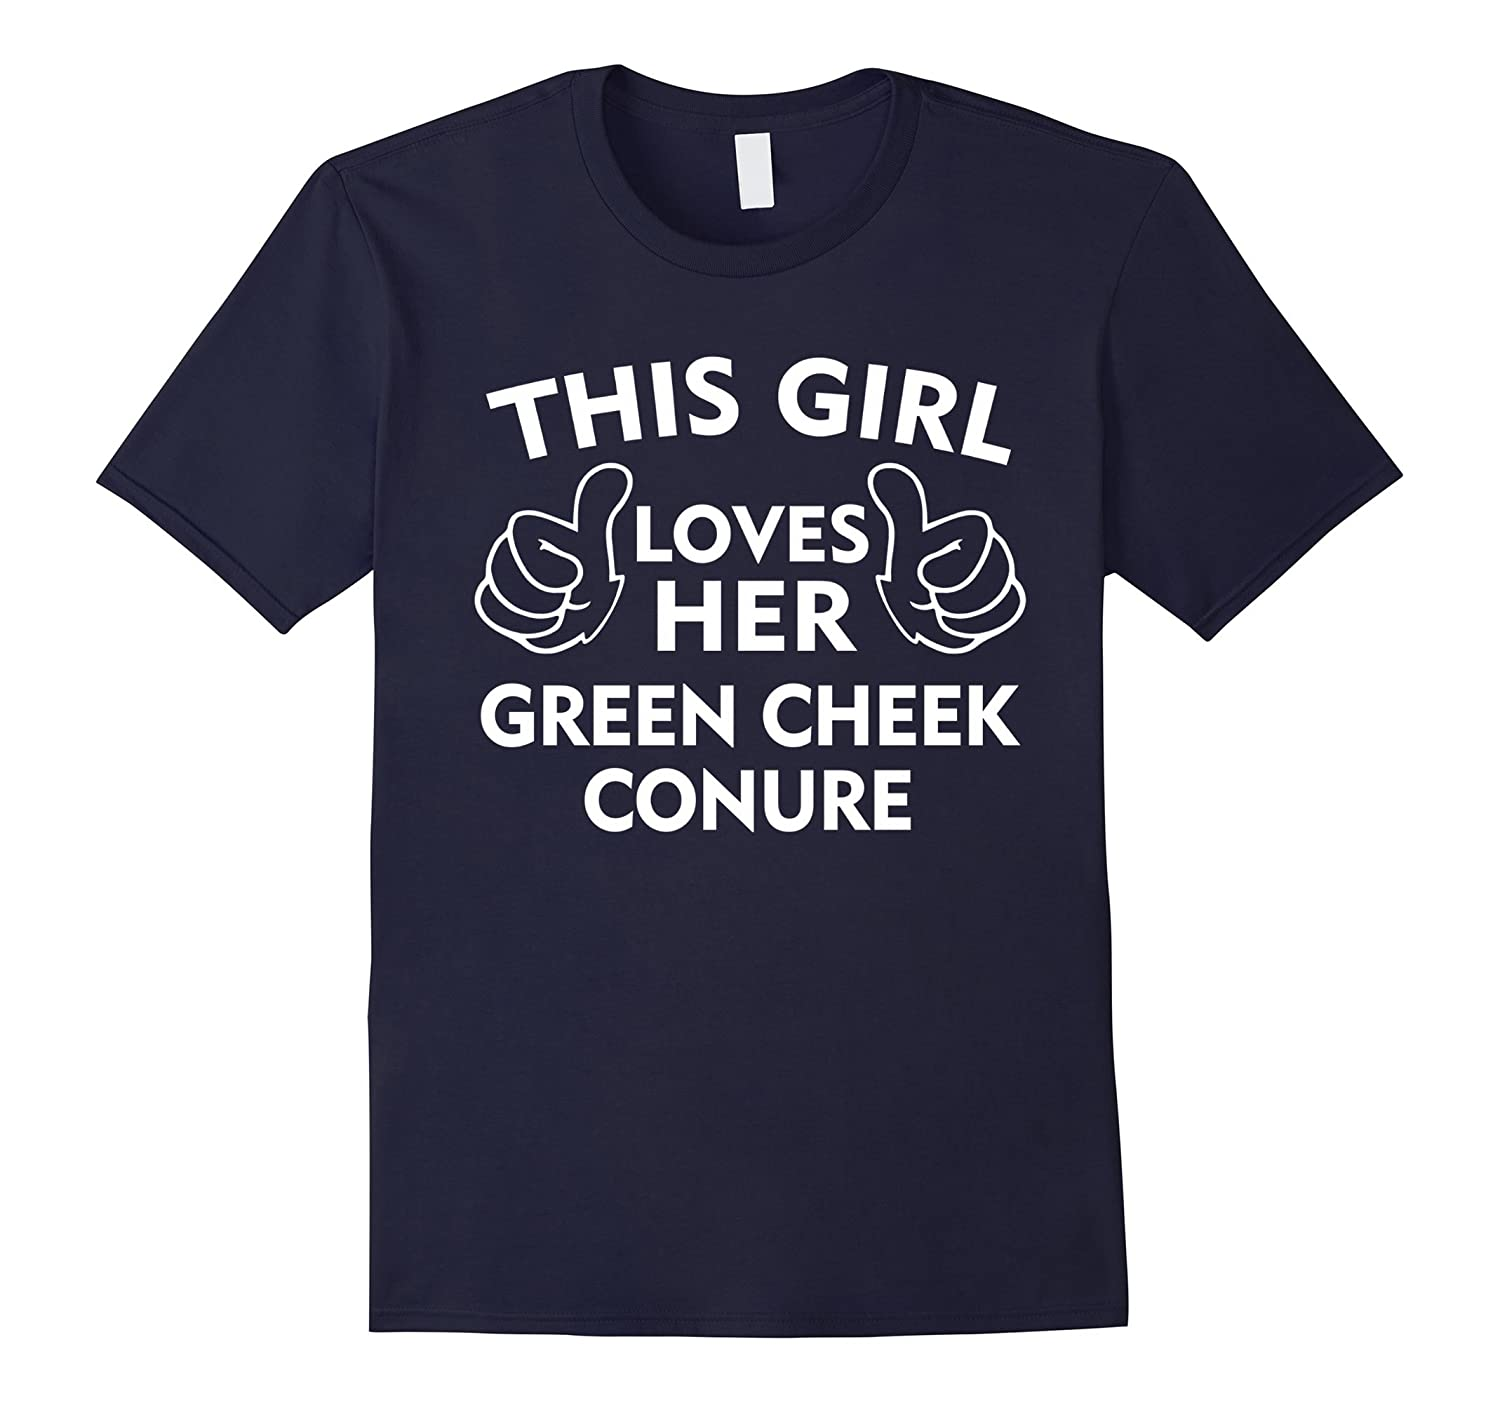 This Girl Loves Her Green Cheek Conure T-Shirt-Vaci